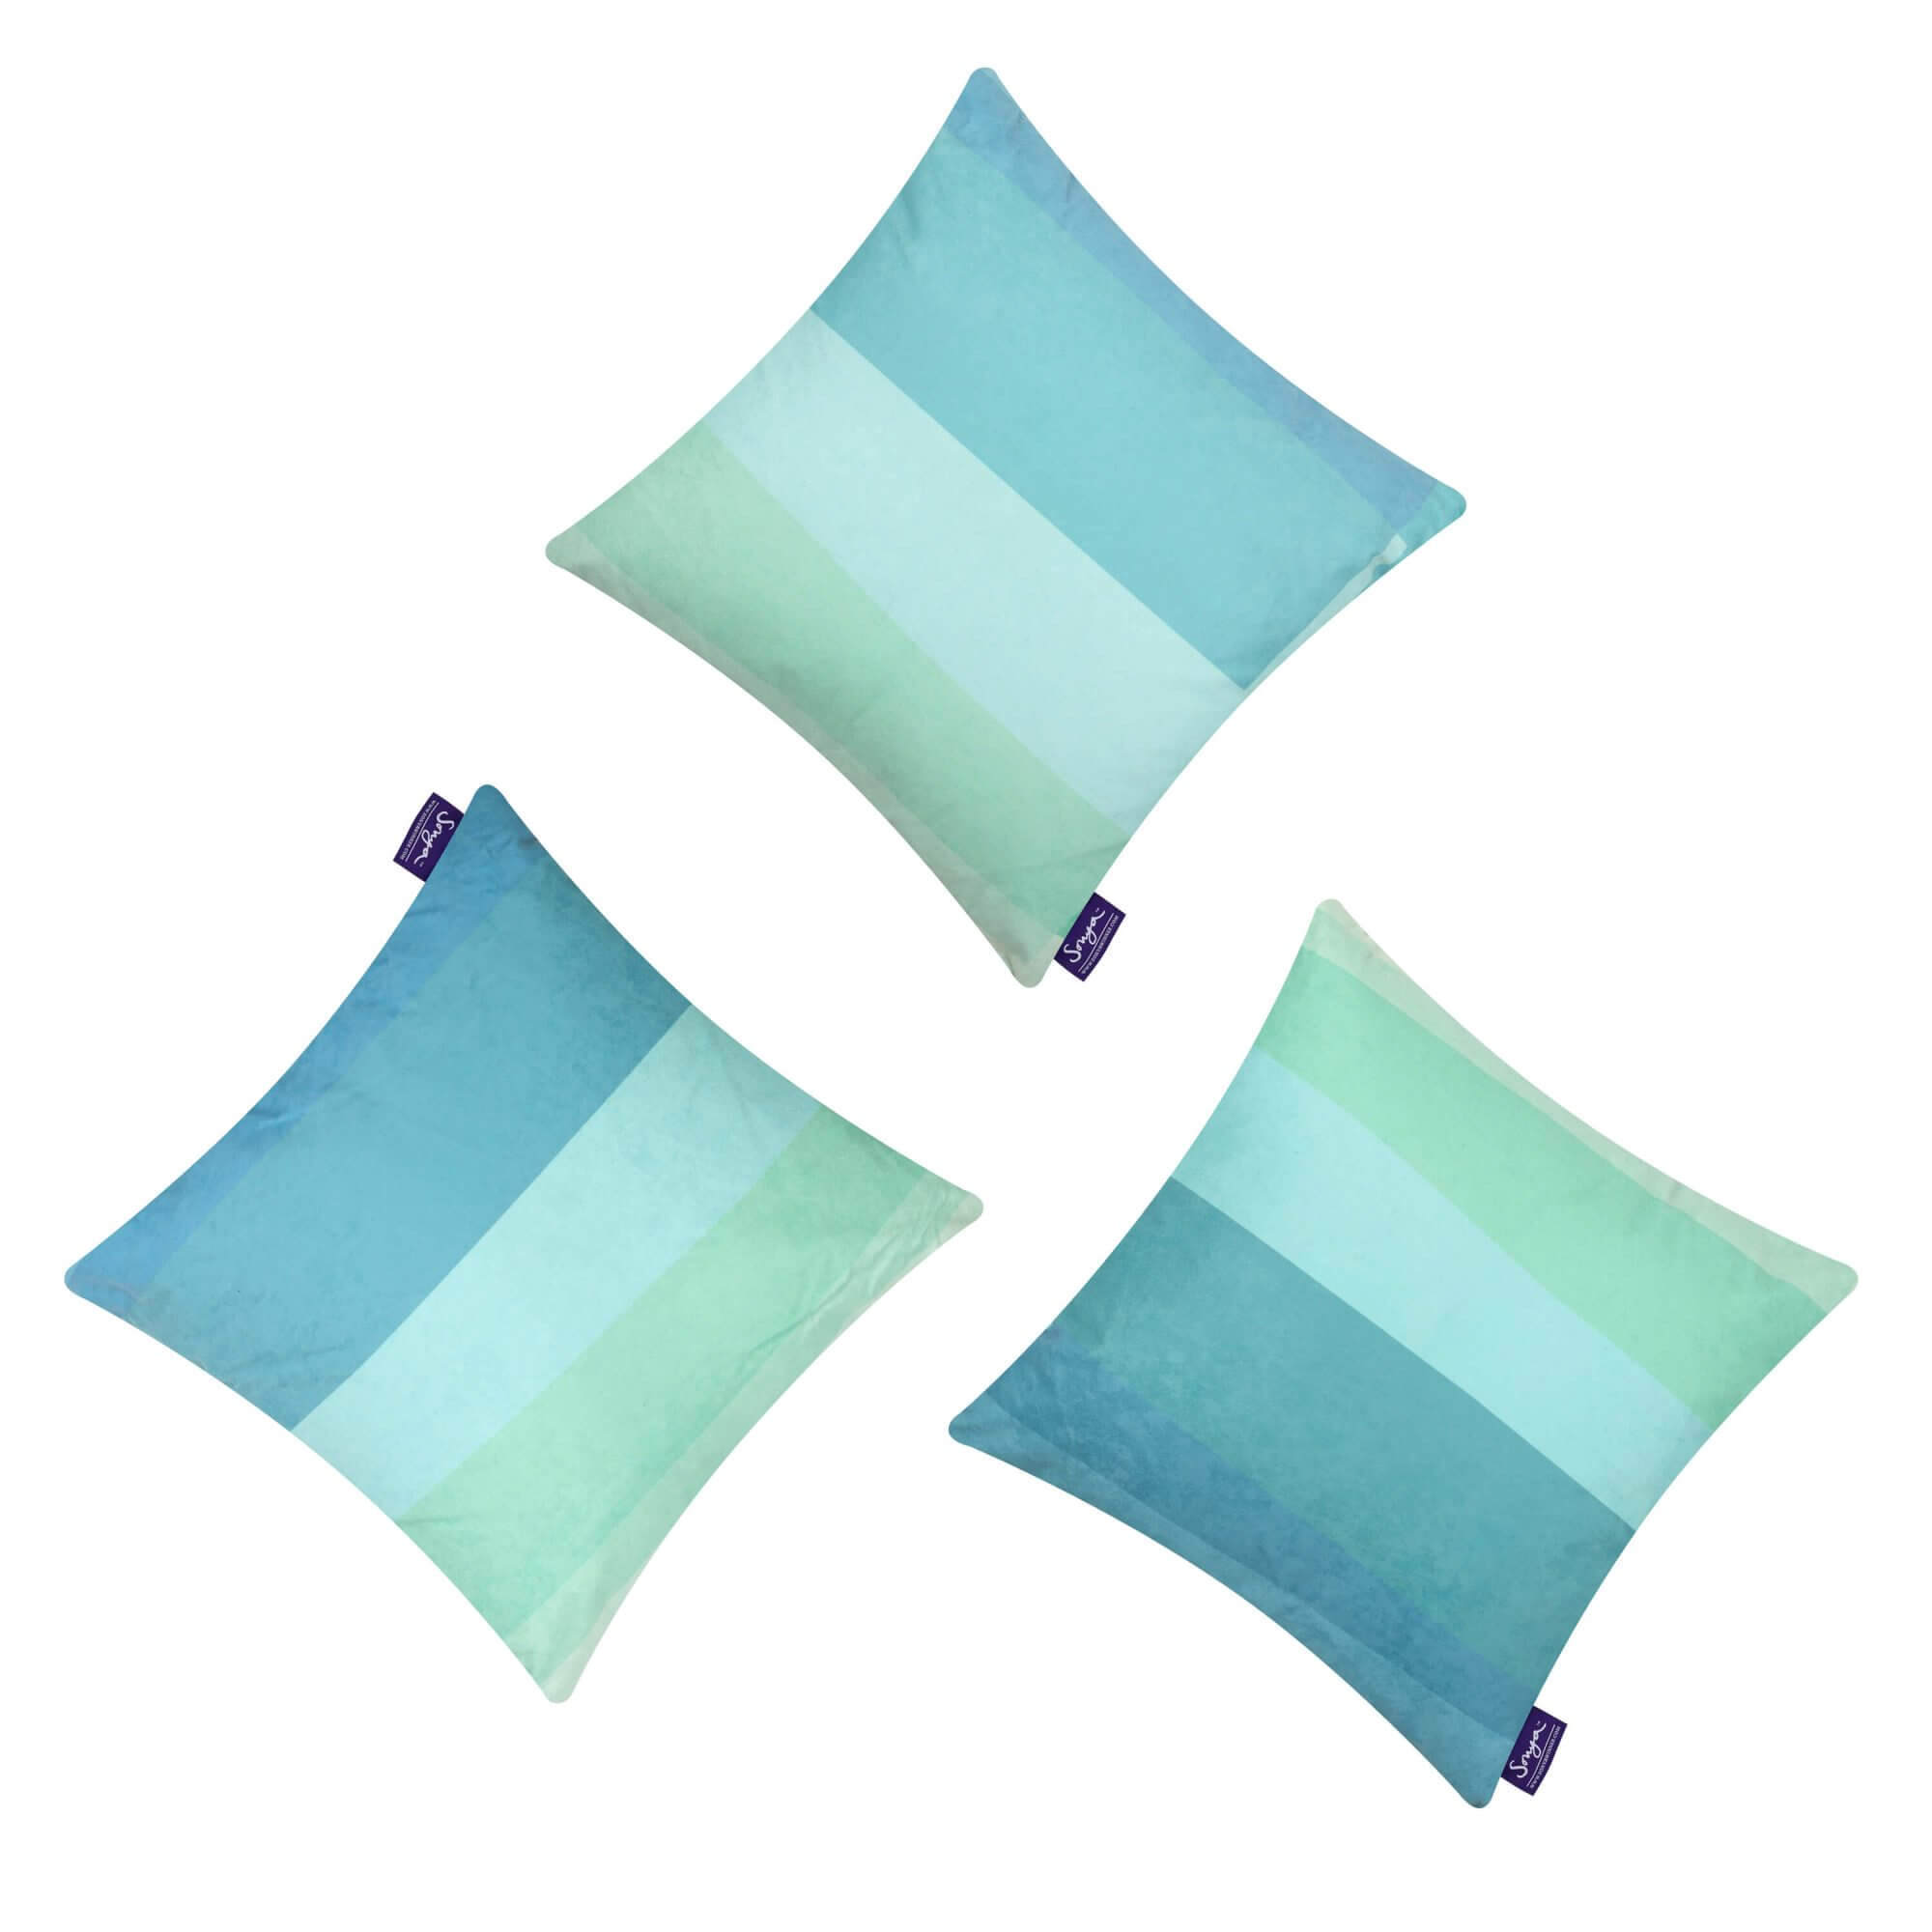 A cropped detail image of the square decorative Aqua Teal cushions set, showcasing the calming turquoise colours, the geometric pattern and elegant faux suede texture